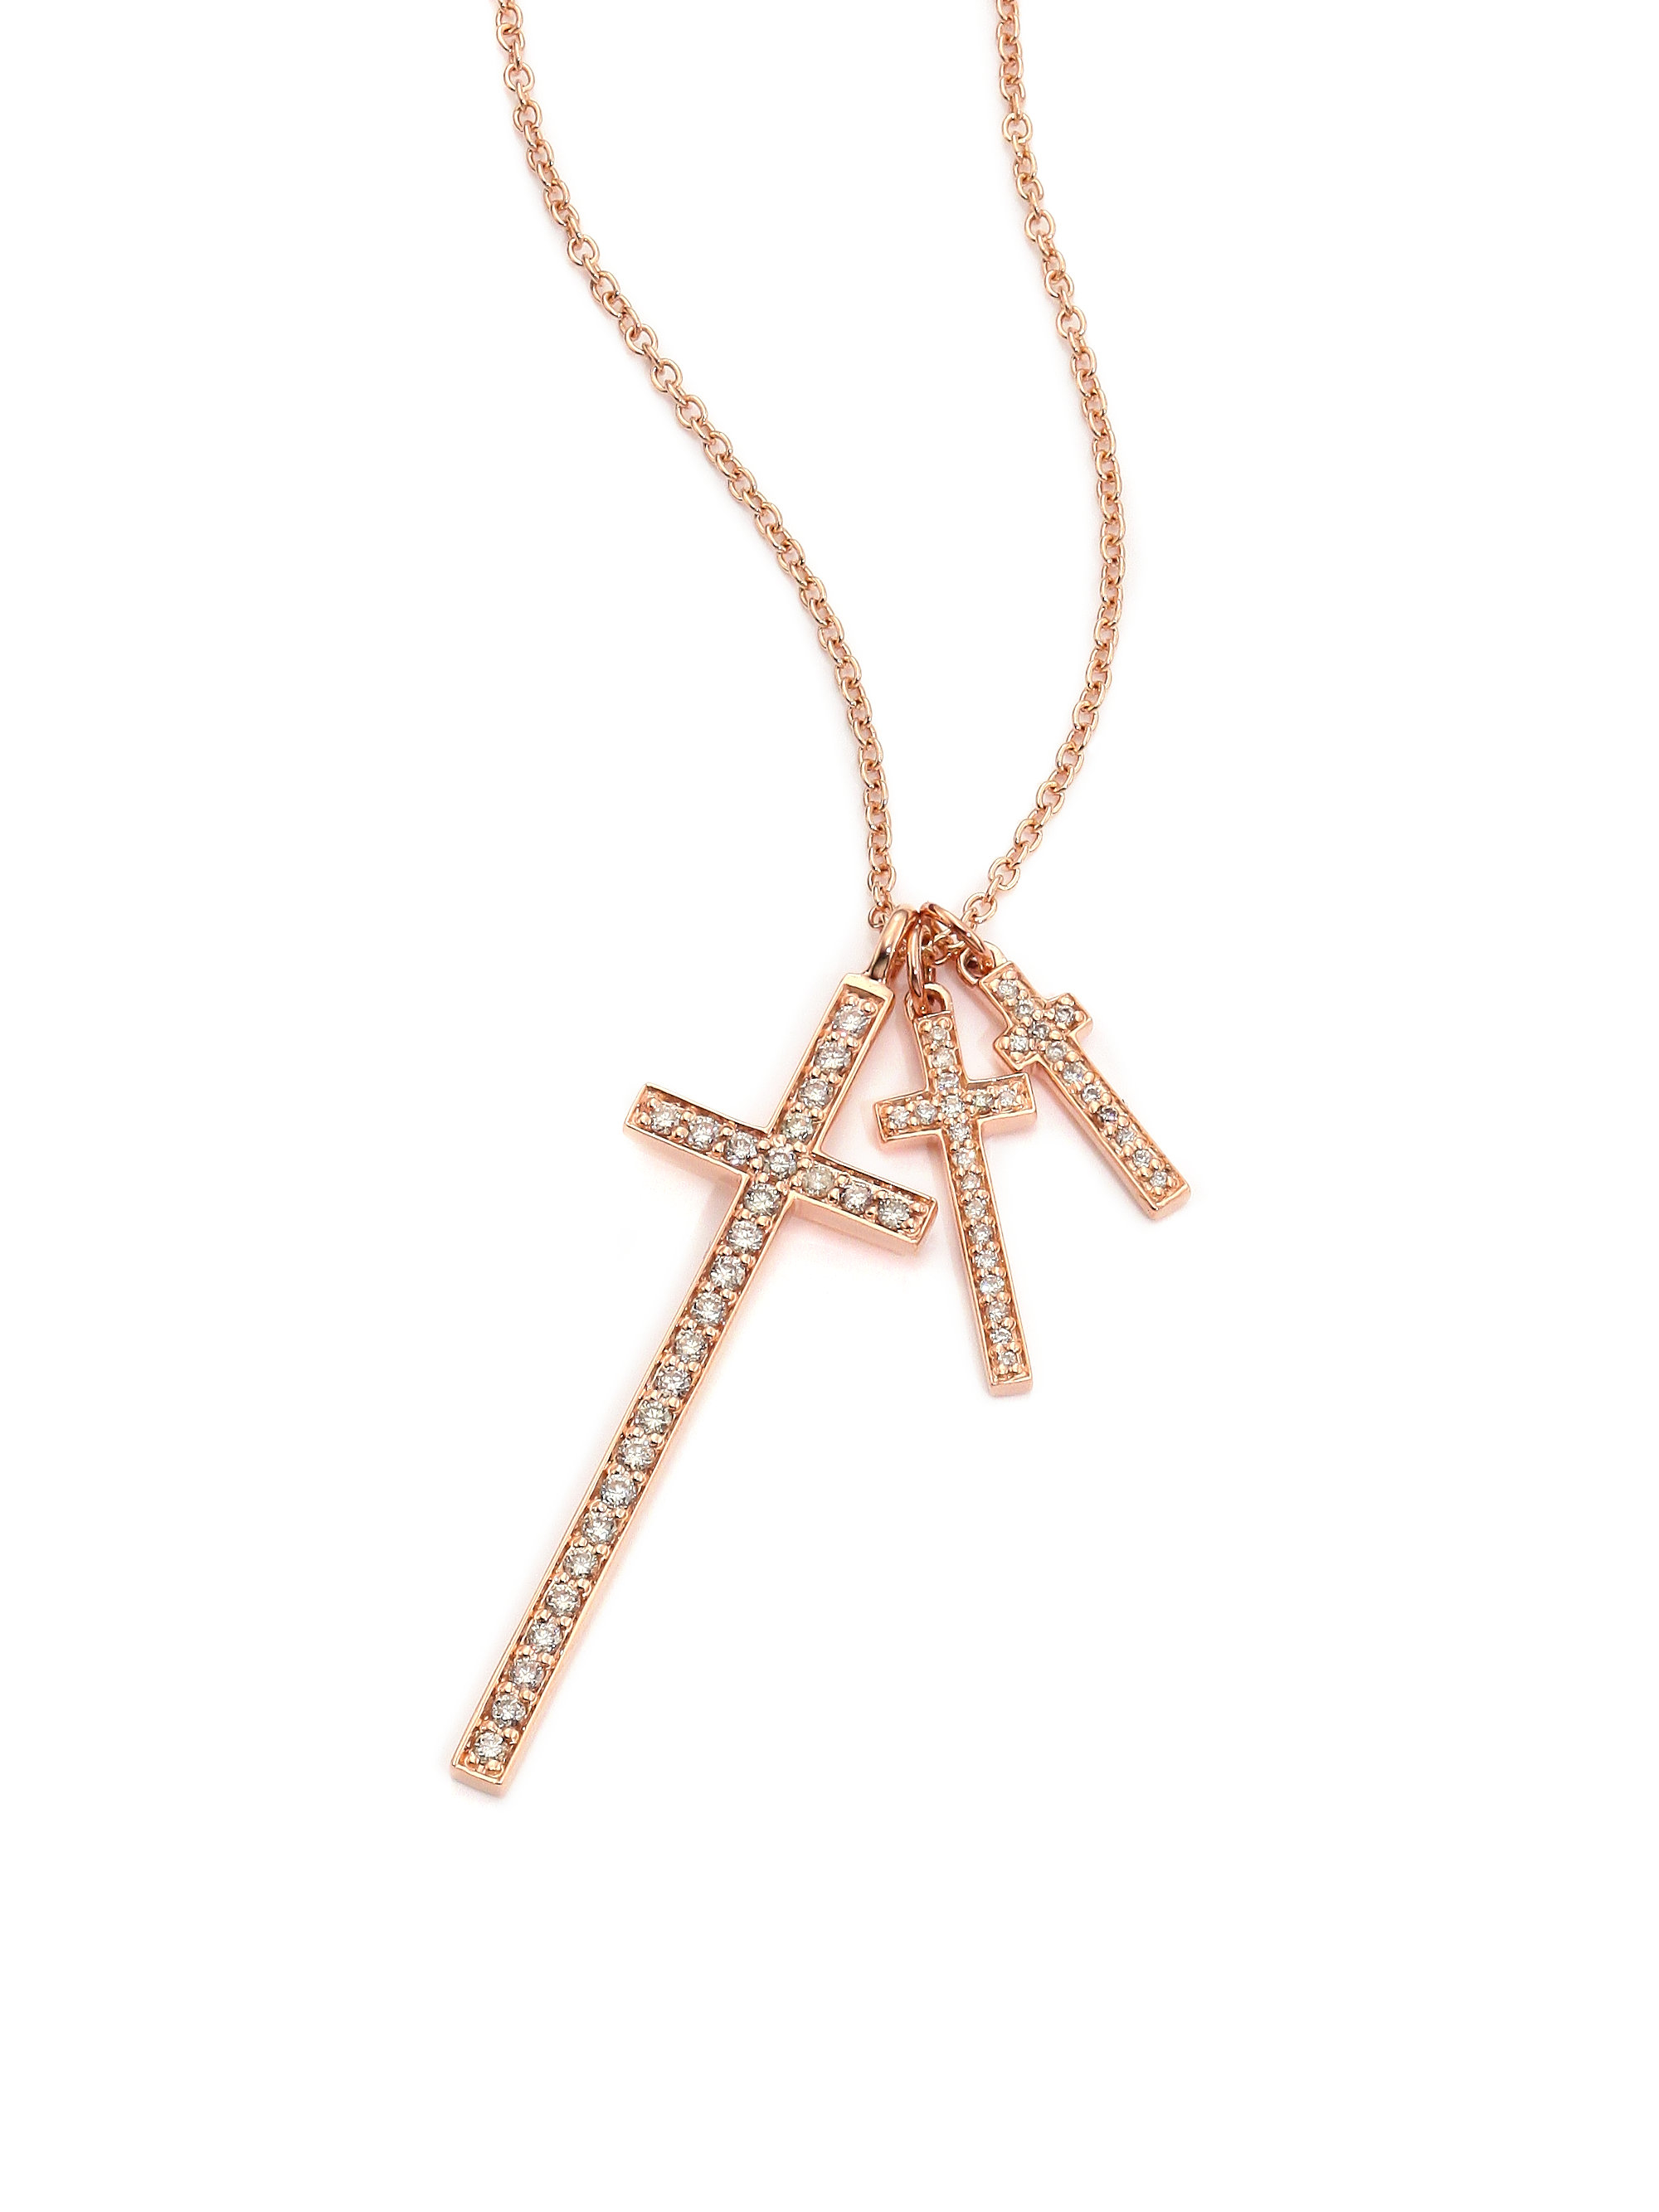 lj cross champagne diamond 14k rose gold cross pendant. Black Bedroom Furniture Sets. Home Design Ideas